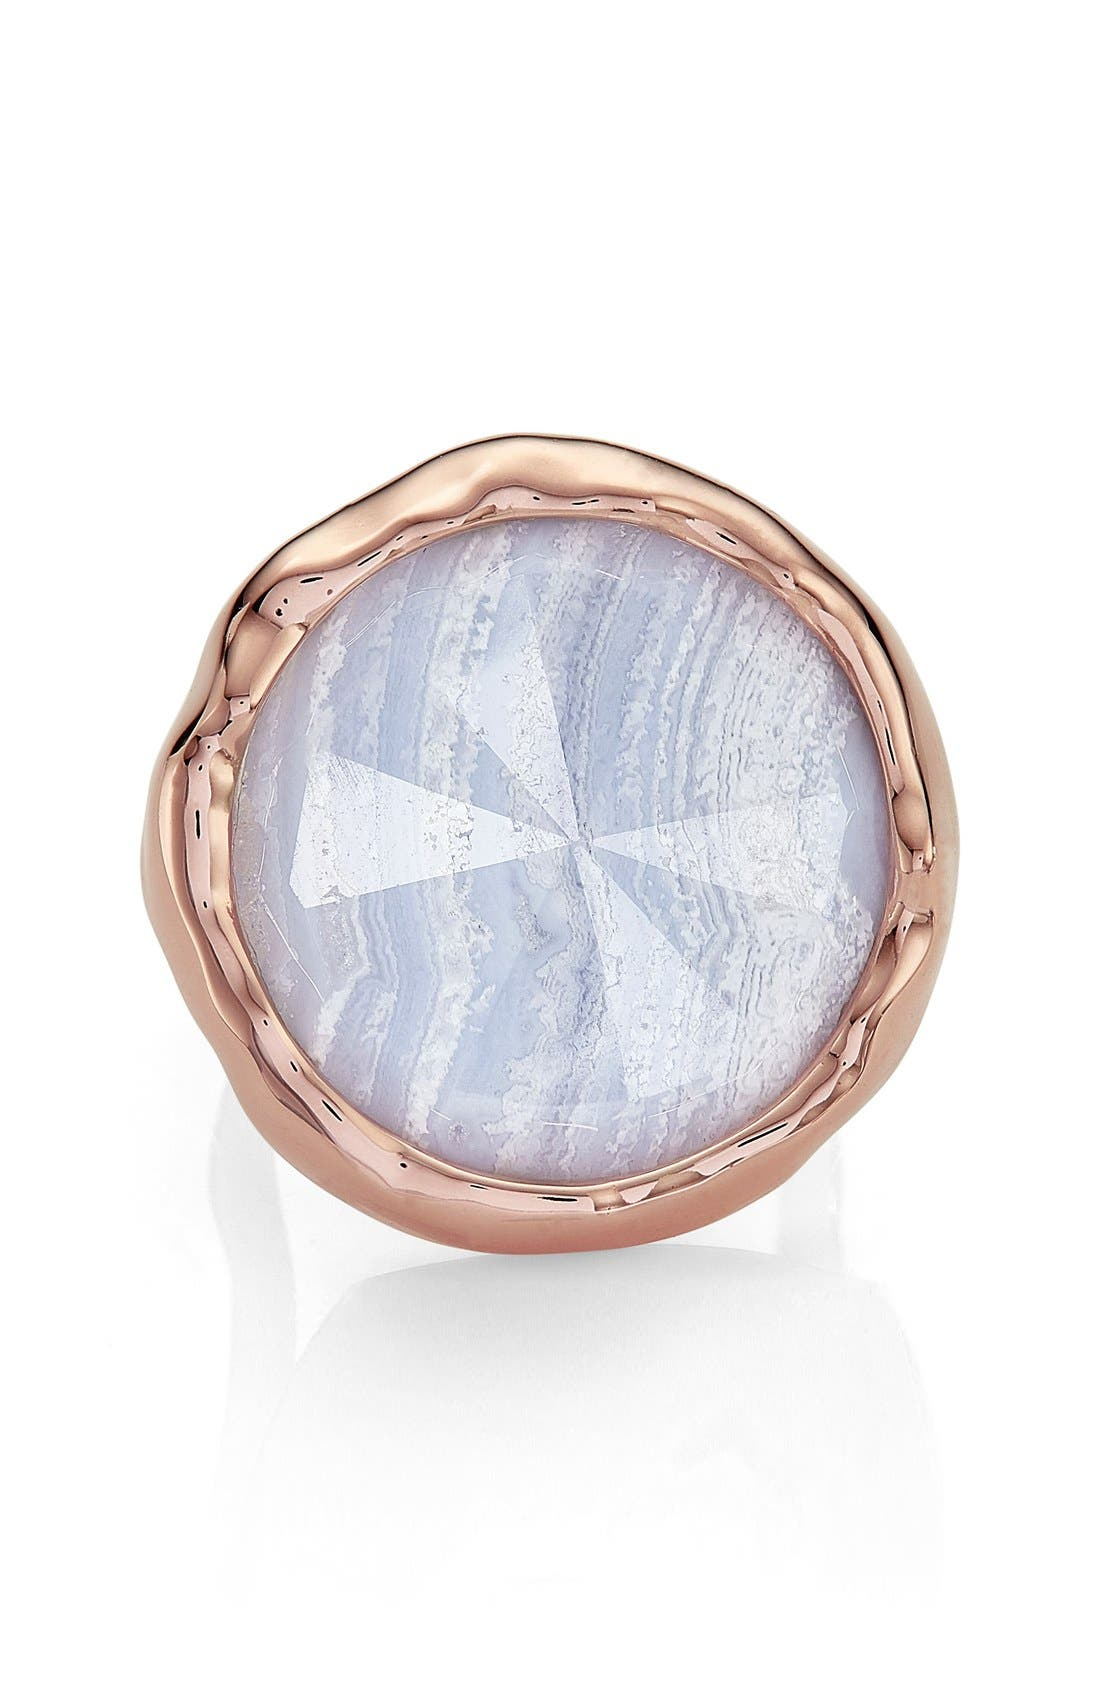 'Siren' Semiprecious Stone Ring,                             Alternate thumbnail 3, color,                             Blue Lace Agate/ Rose Gold